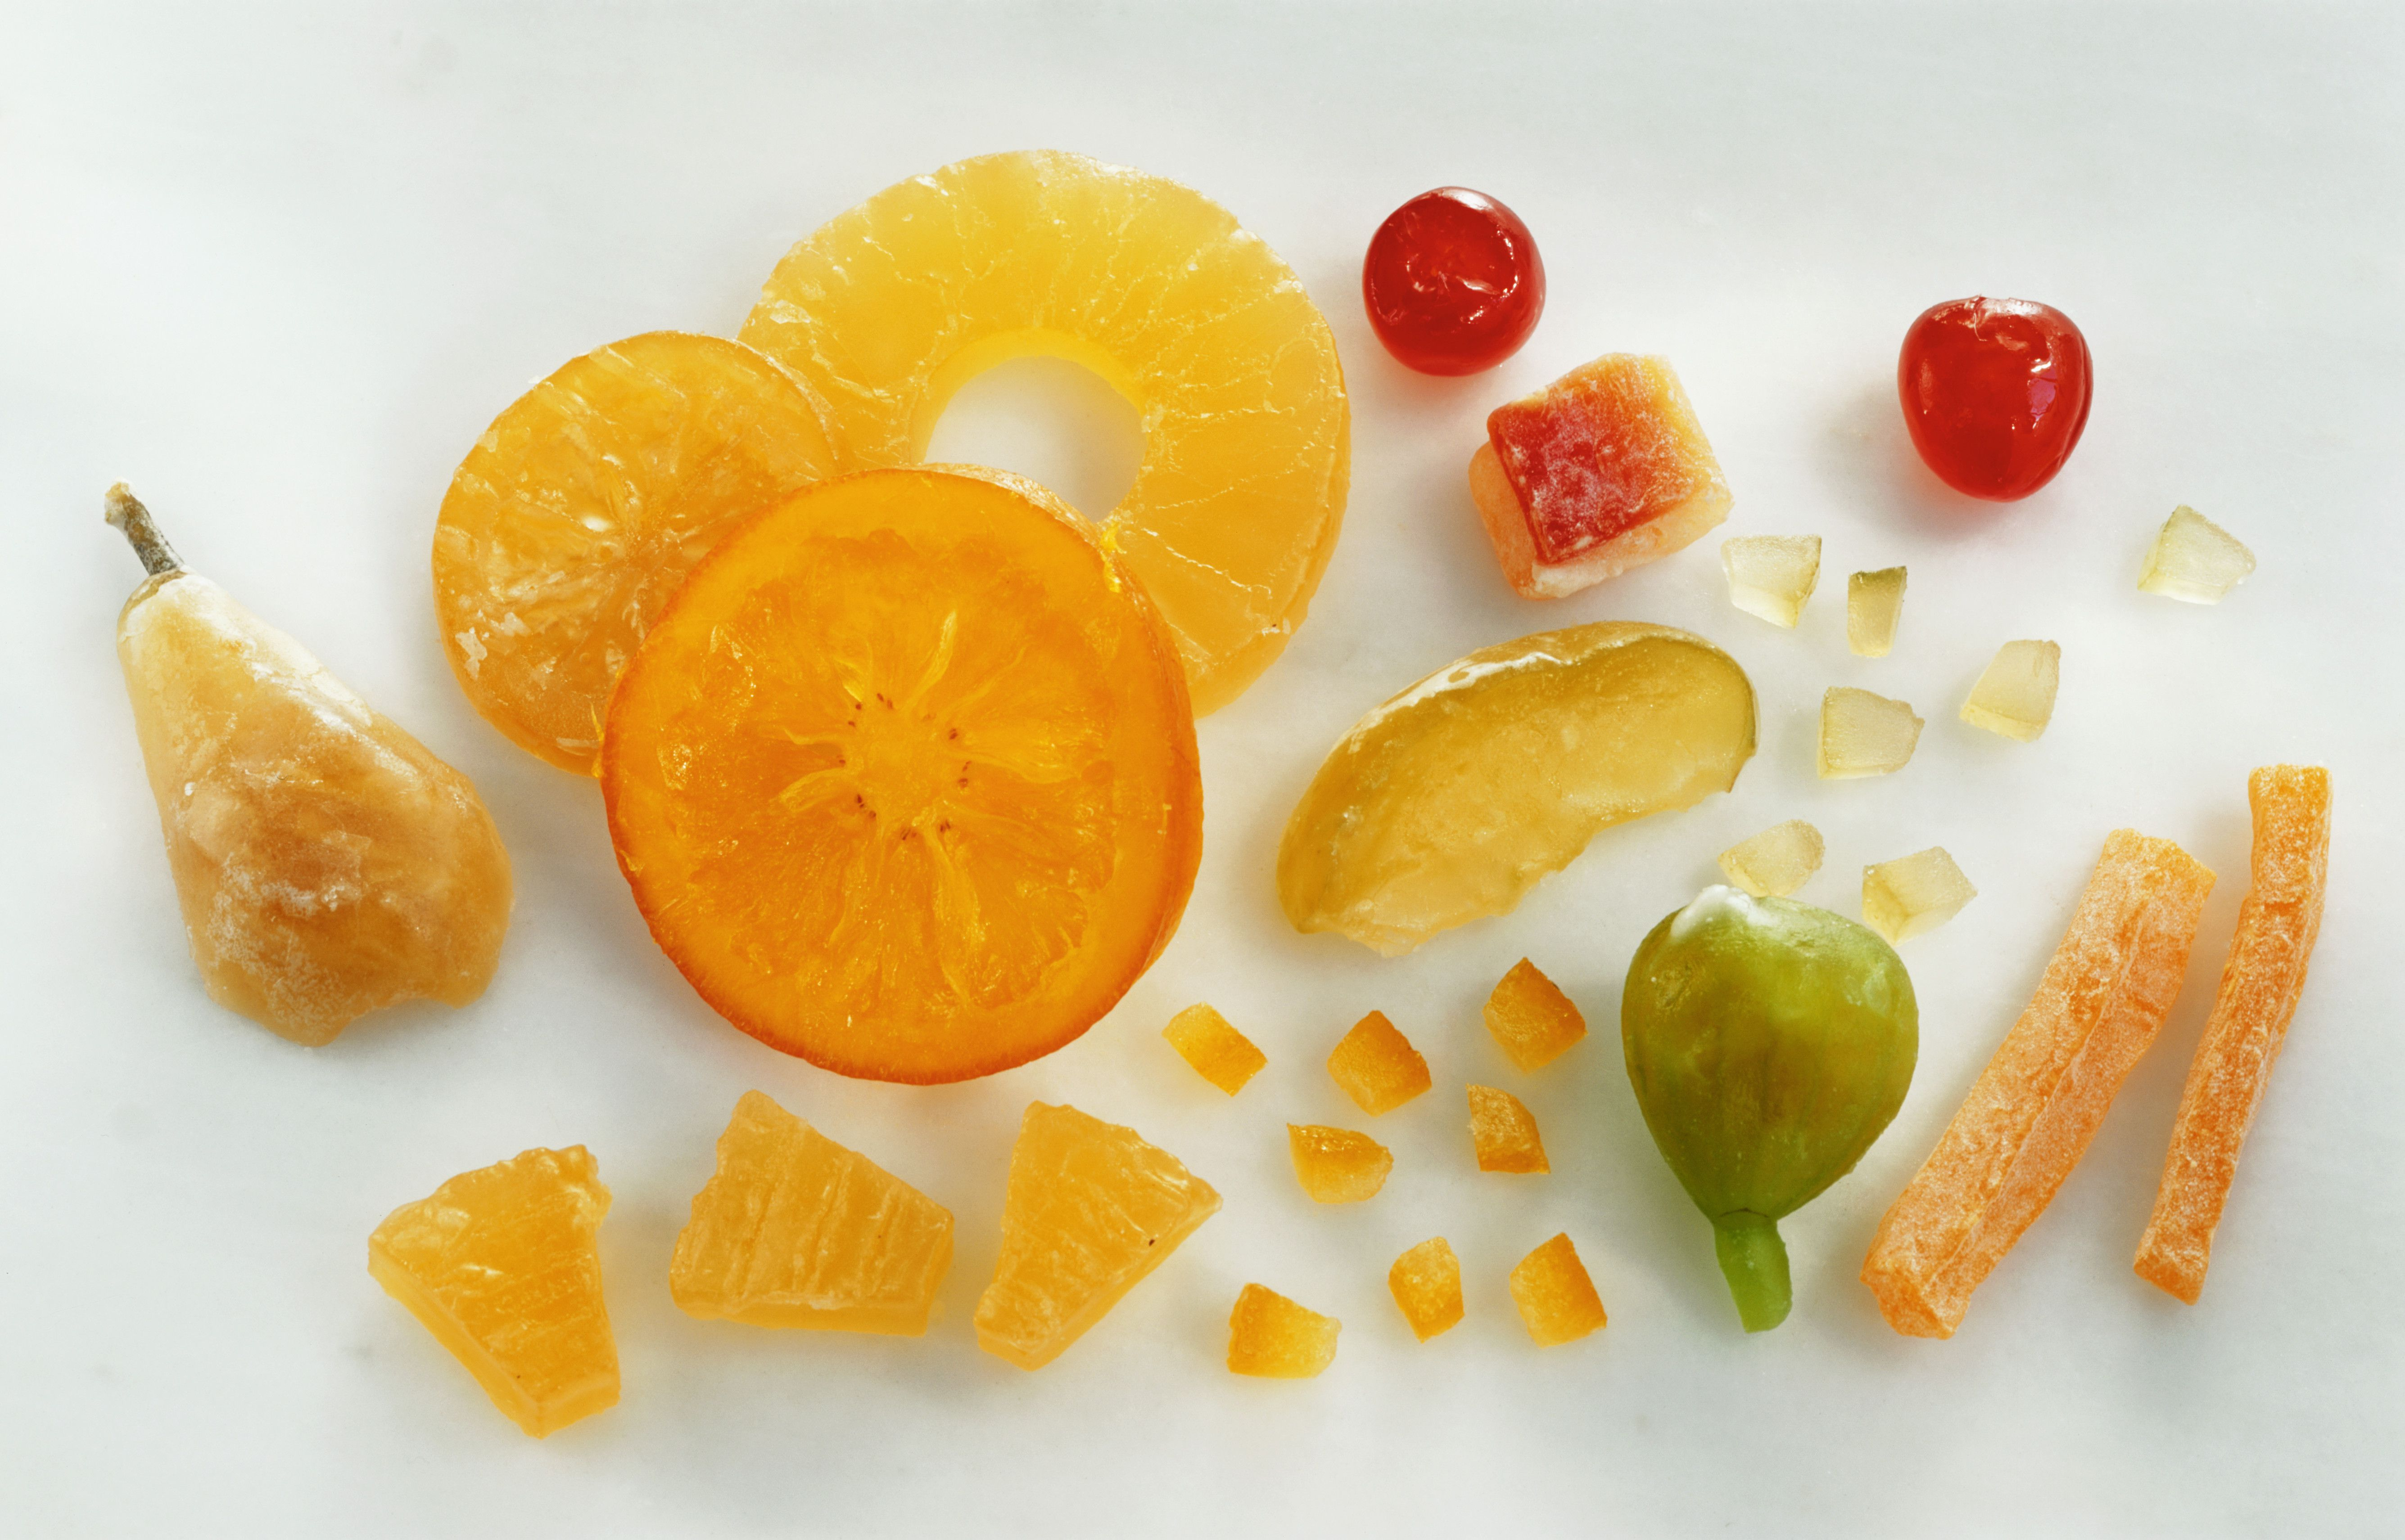 A variety of candied fruits